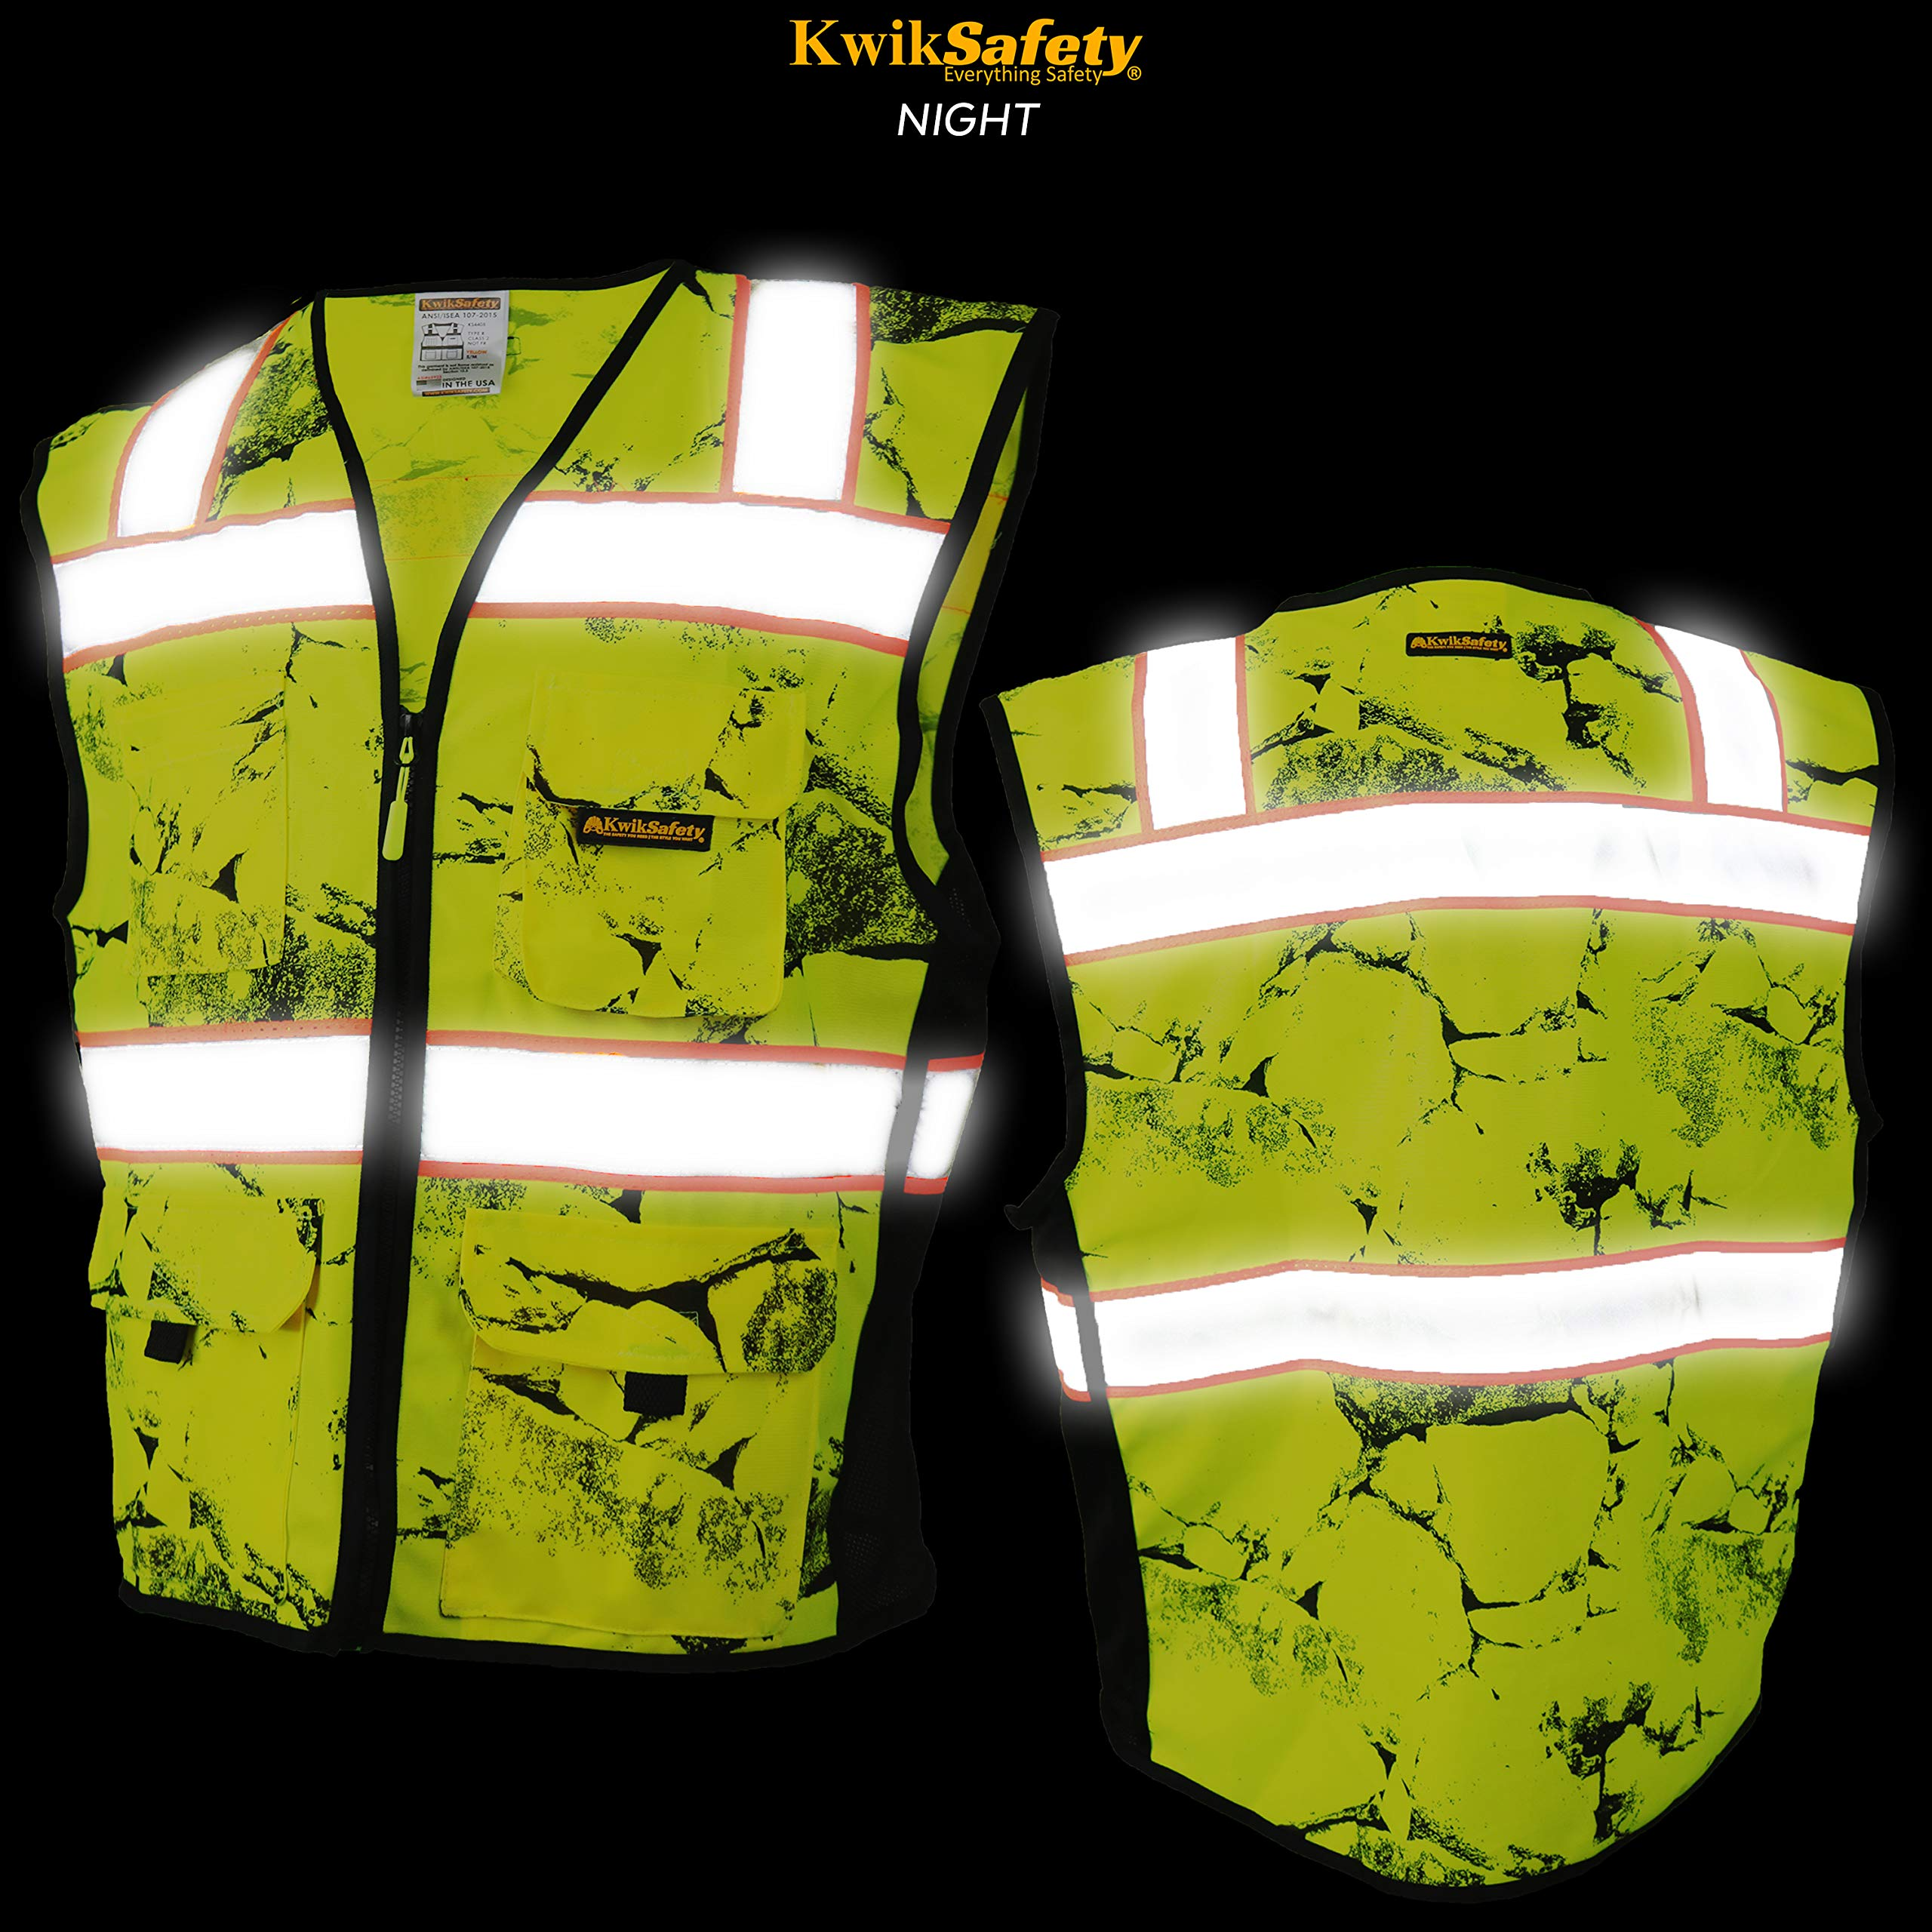 KwikSafety (Charlotte, NC) UNCLE WILLY'S WALL (10 Pockets) Class 2 ANSI High Visibility Reflective Safety Vest Heavy Duty Mesh with Zipper and HiVis for Construction Work HiViz Men Yellow Black L/XL by KwikSafety (Image #3)